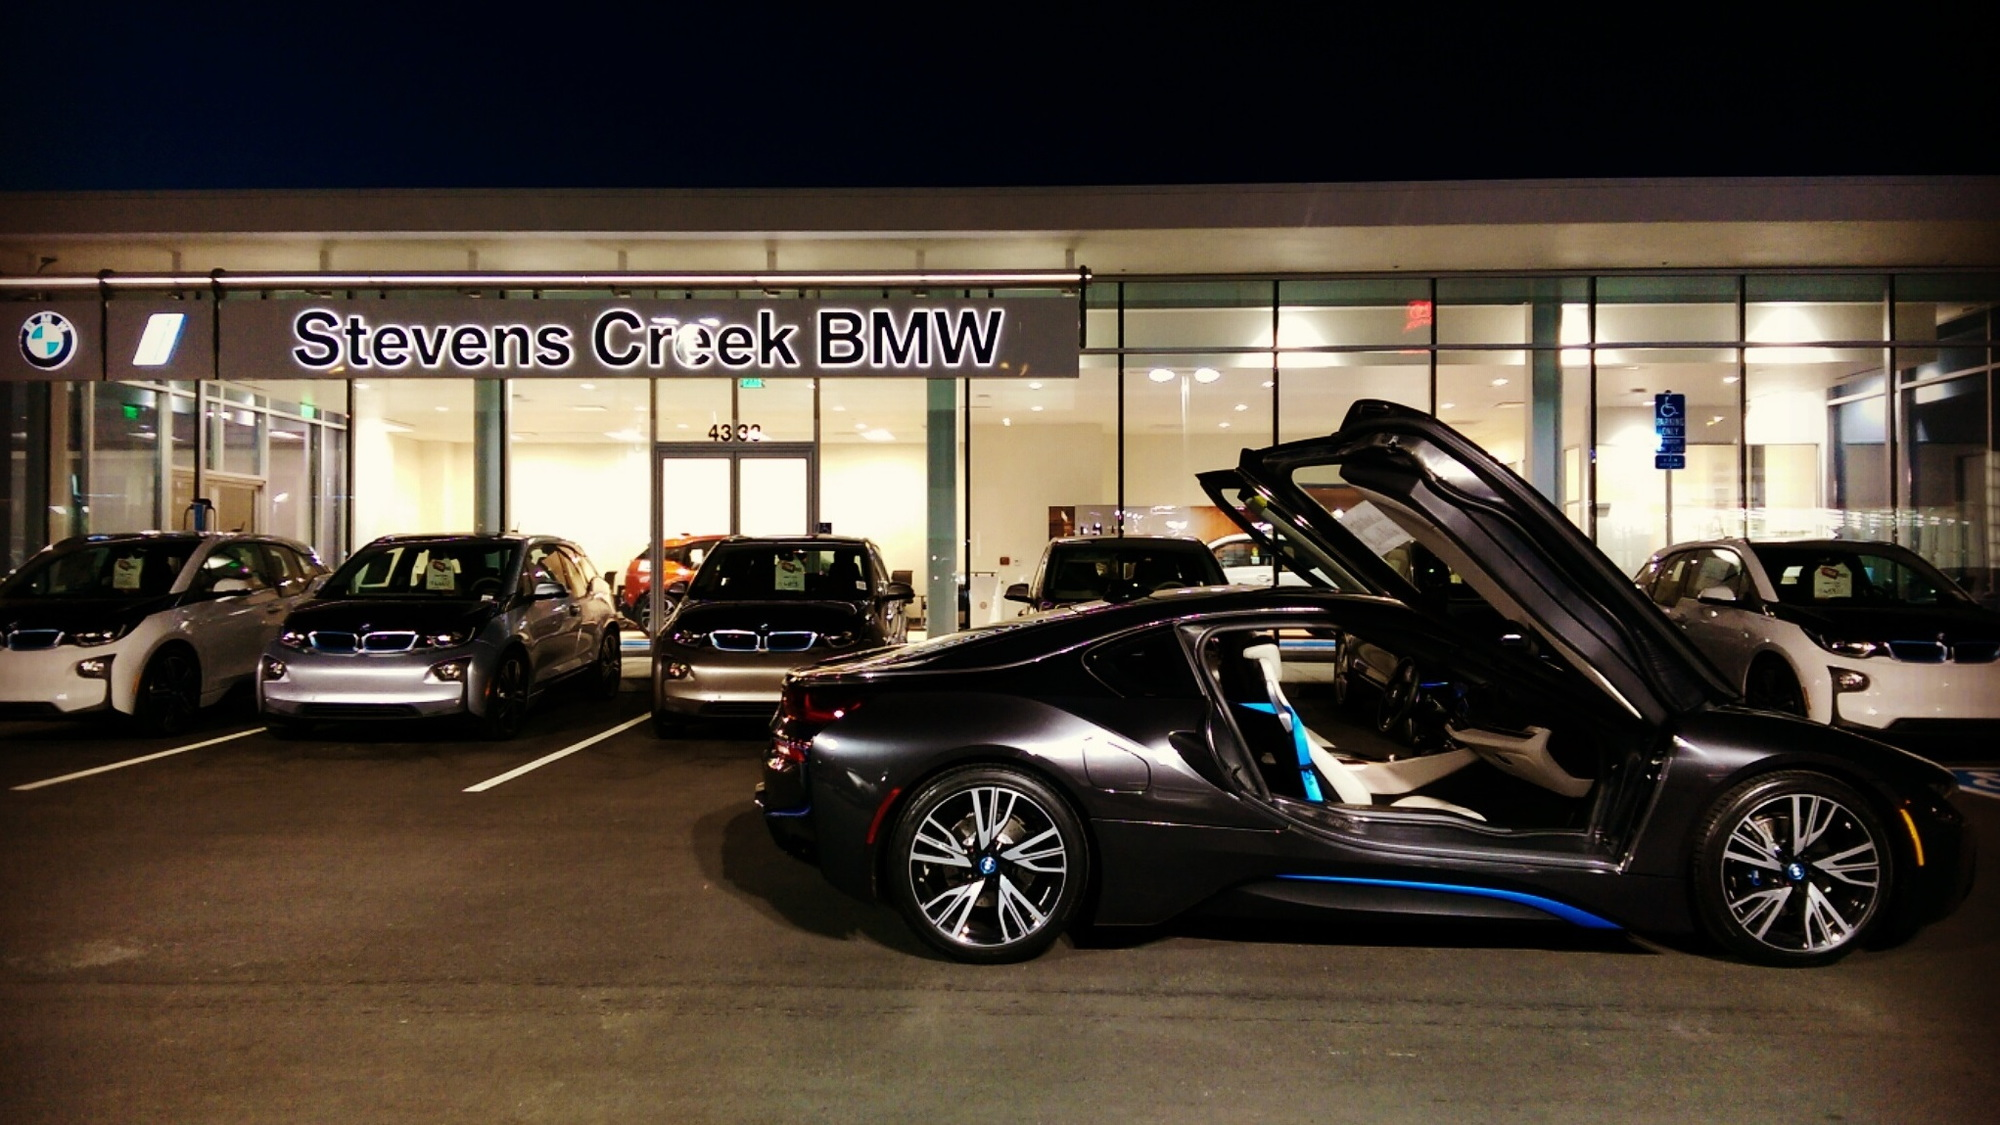 Stevens Creek BMW i Center, Santa Clara, California, May 2015 opening